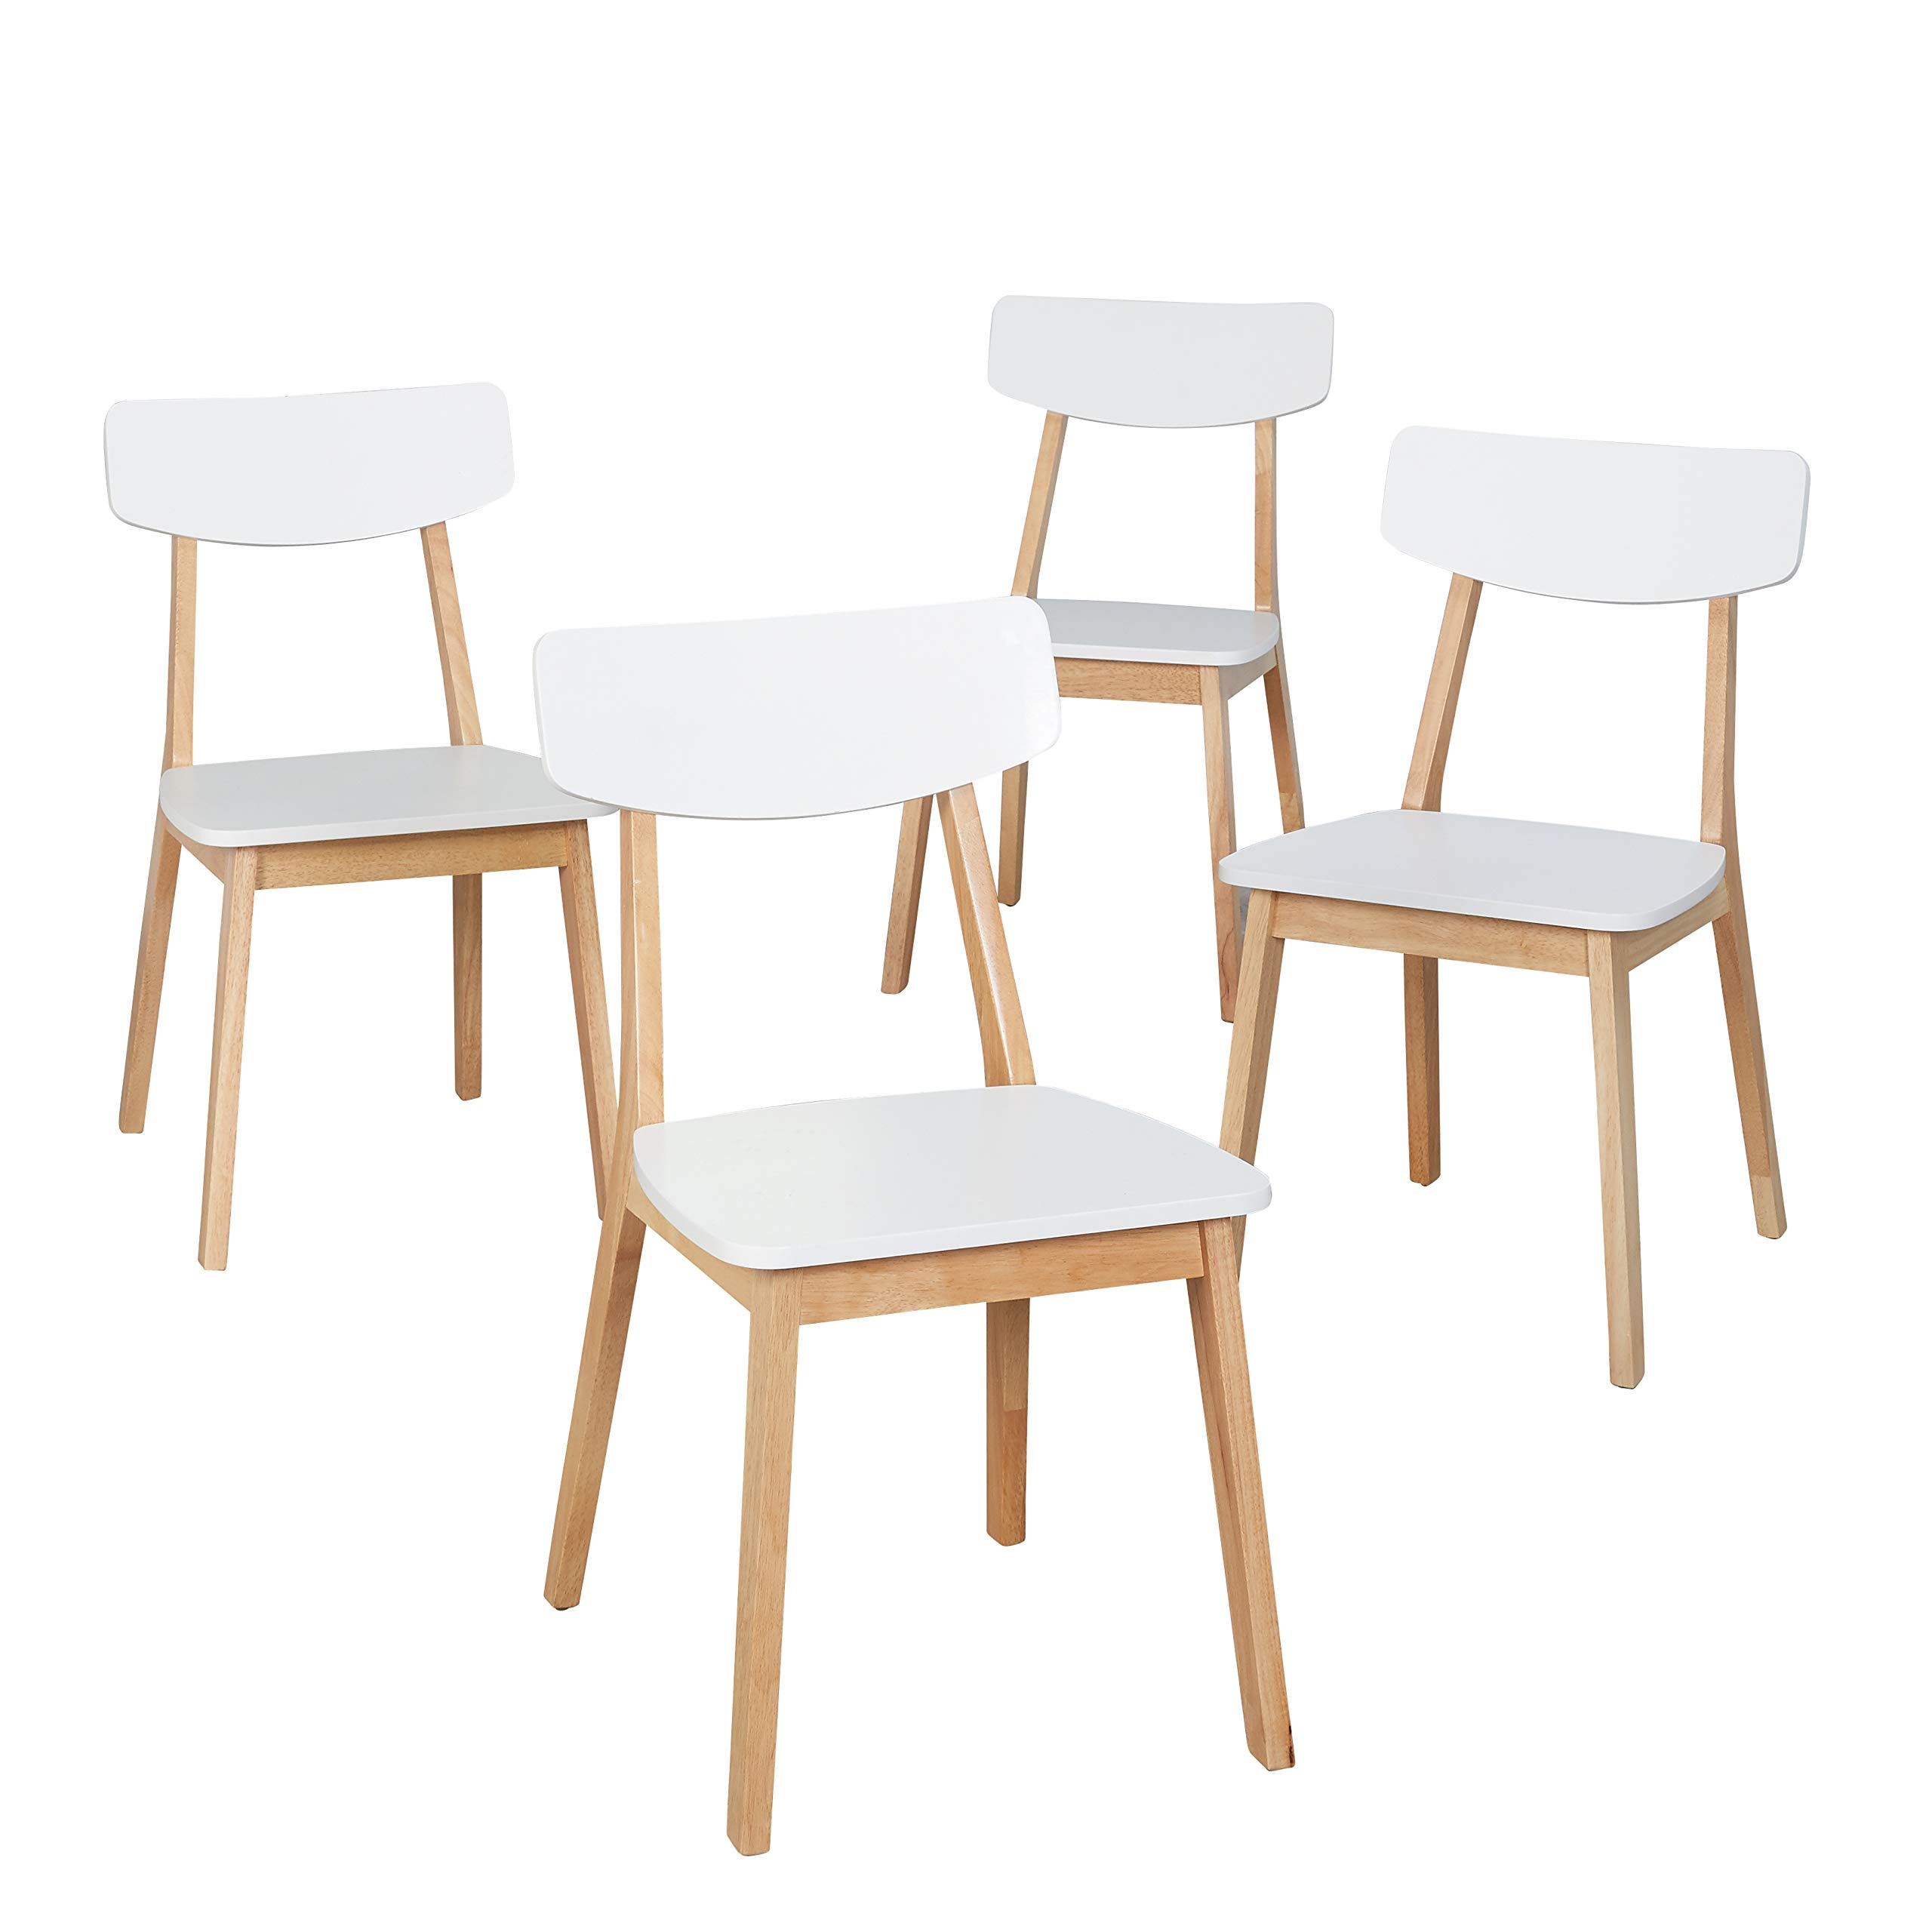 The Mezzanine Shoppe 62218WNA4 Mid Century Modern Two-Tone Wooden Dining Chair, Set of 4, White by The Mezzanine Shoppe